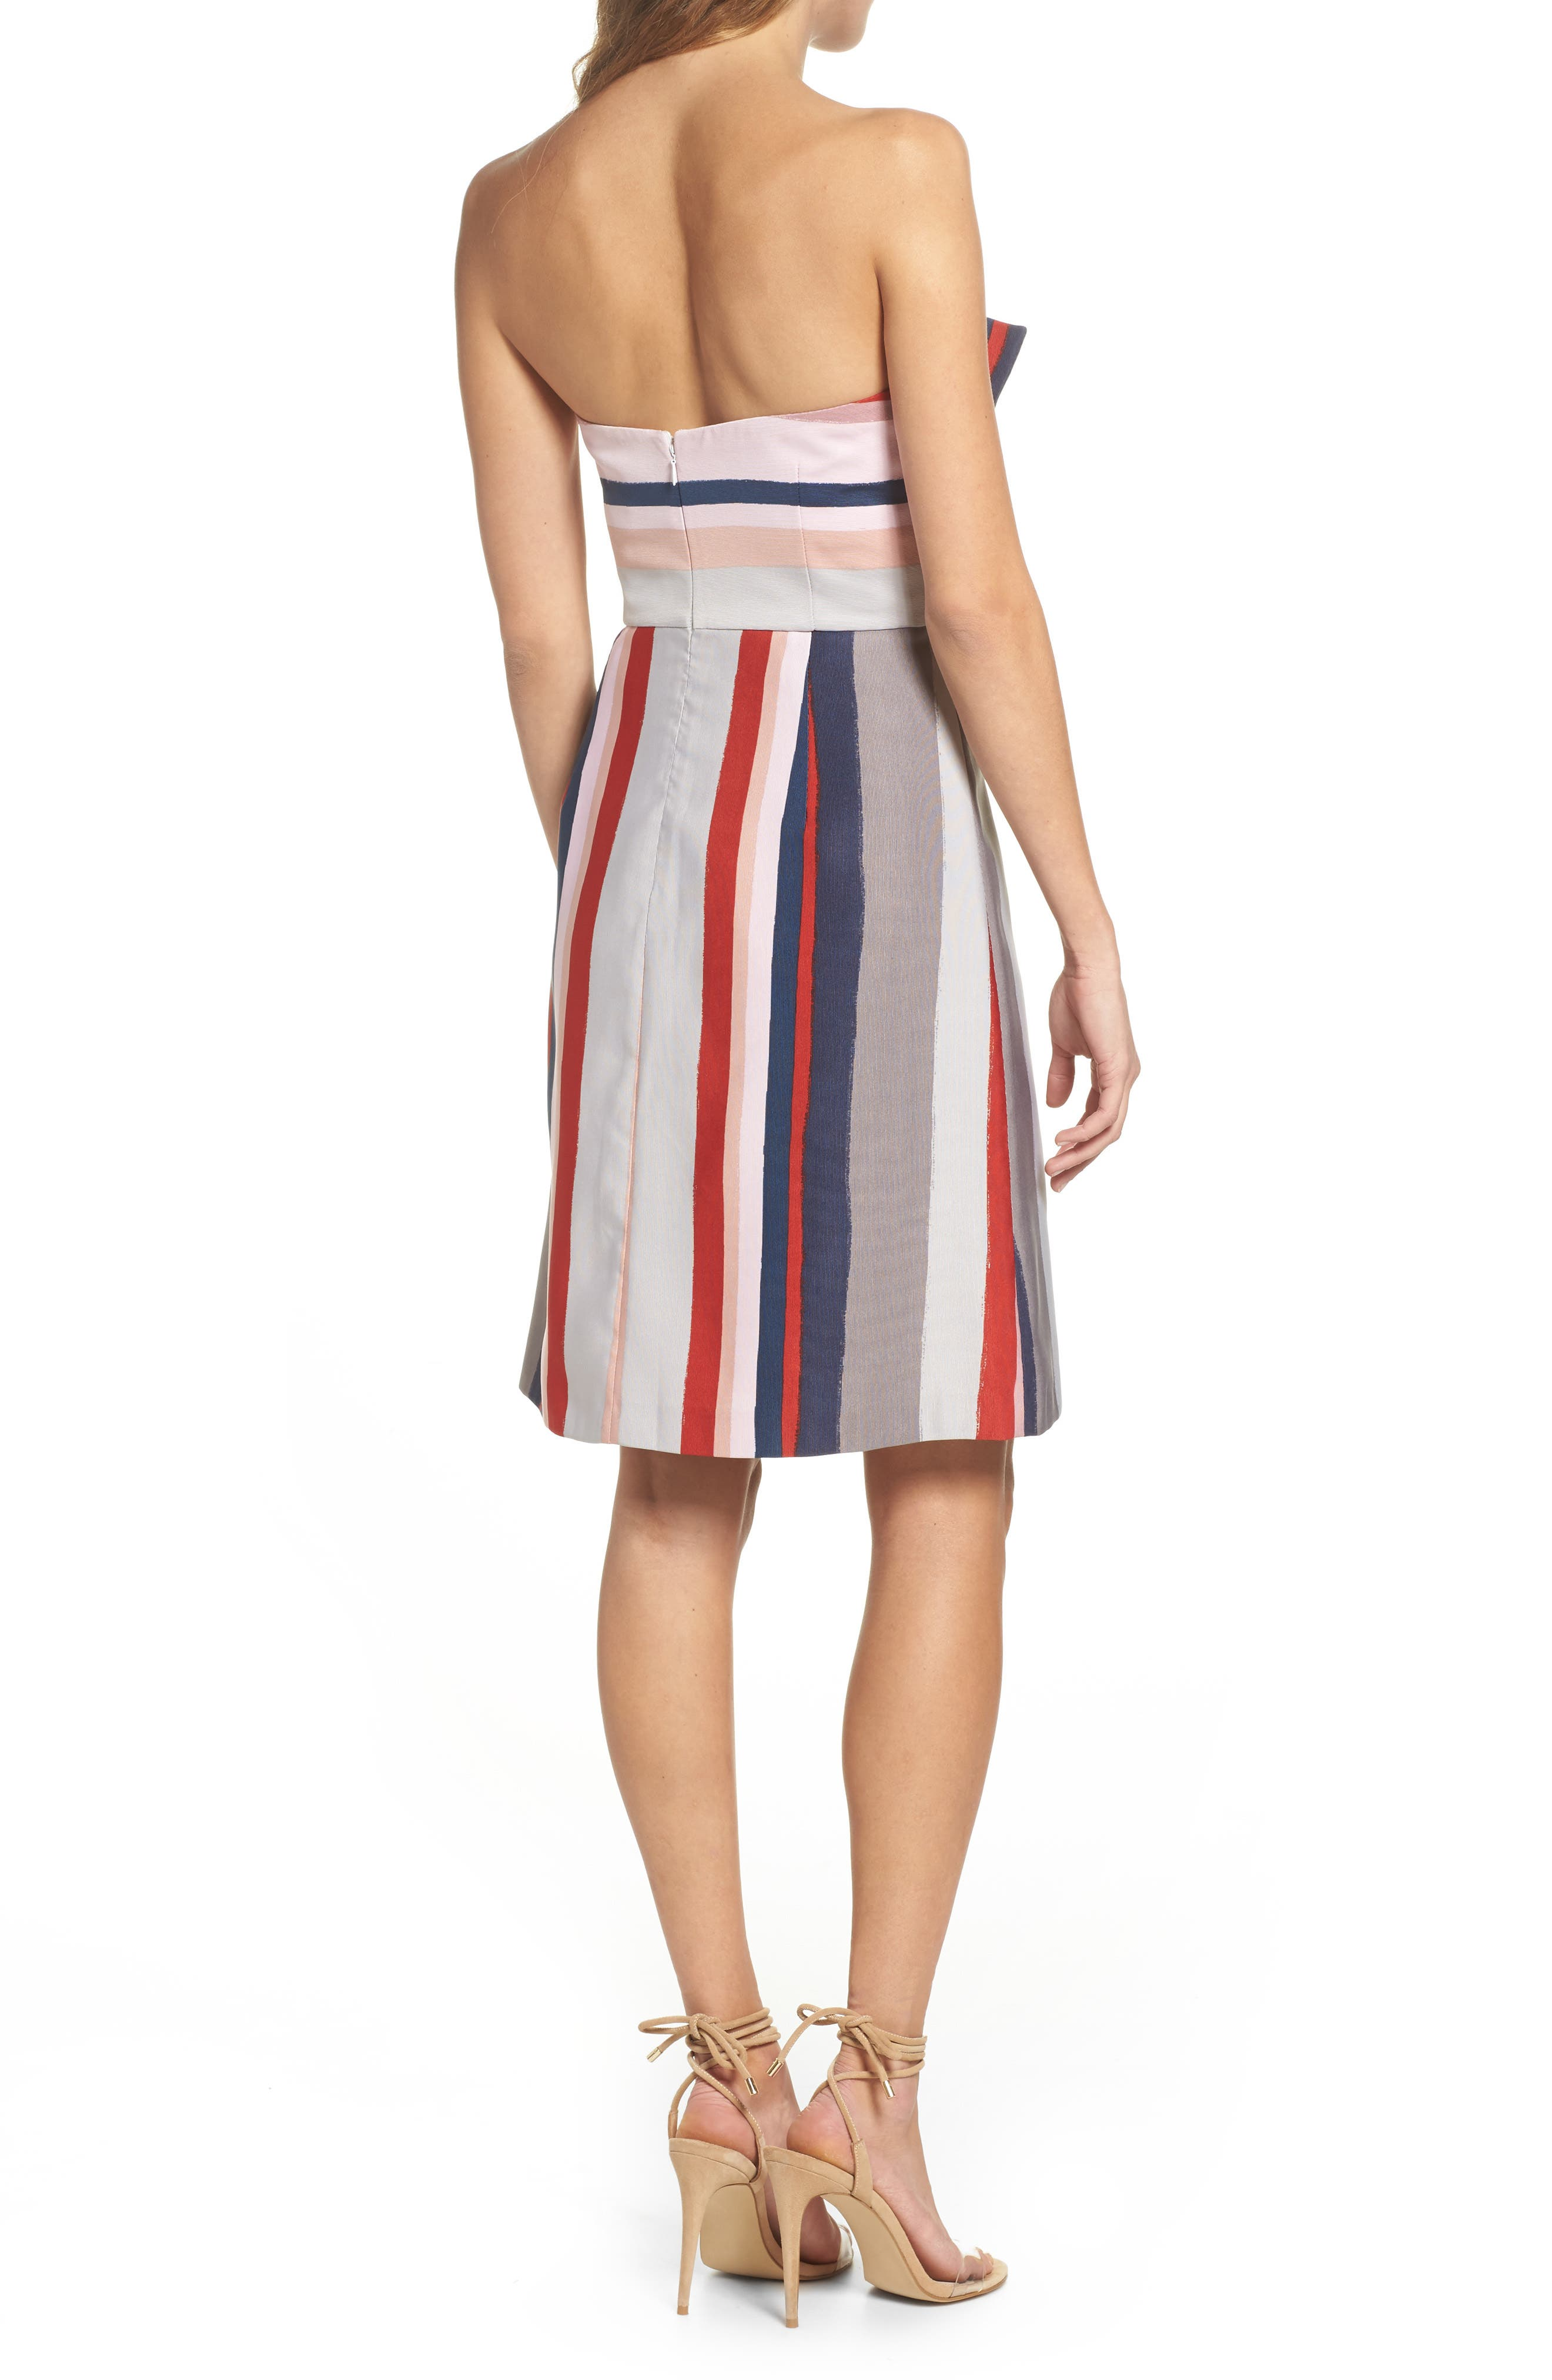 Stripe Strapless Dress,                             Alternate thumbnail 2, color,                             PINK/ GREY